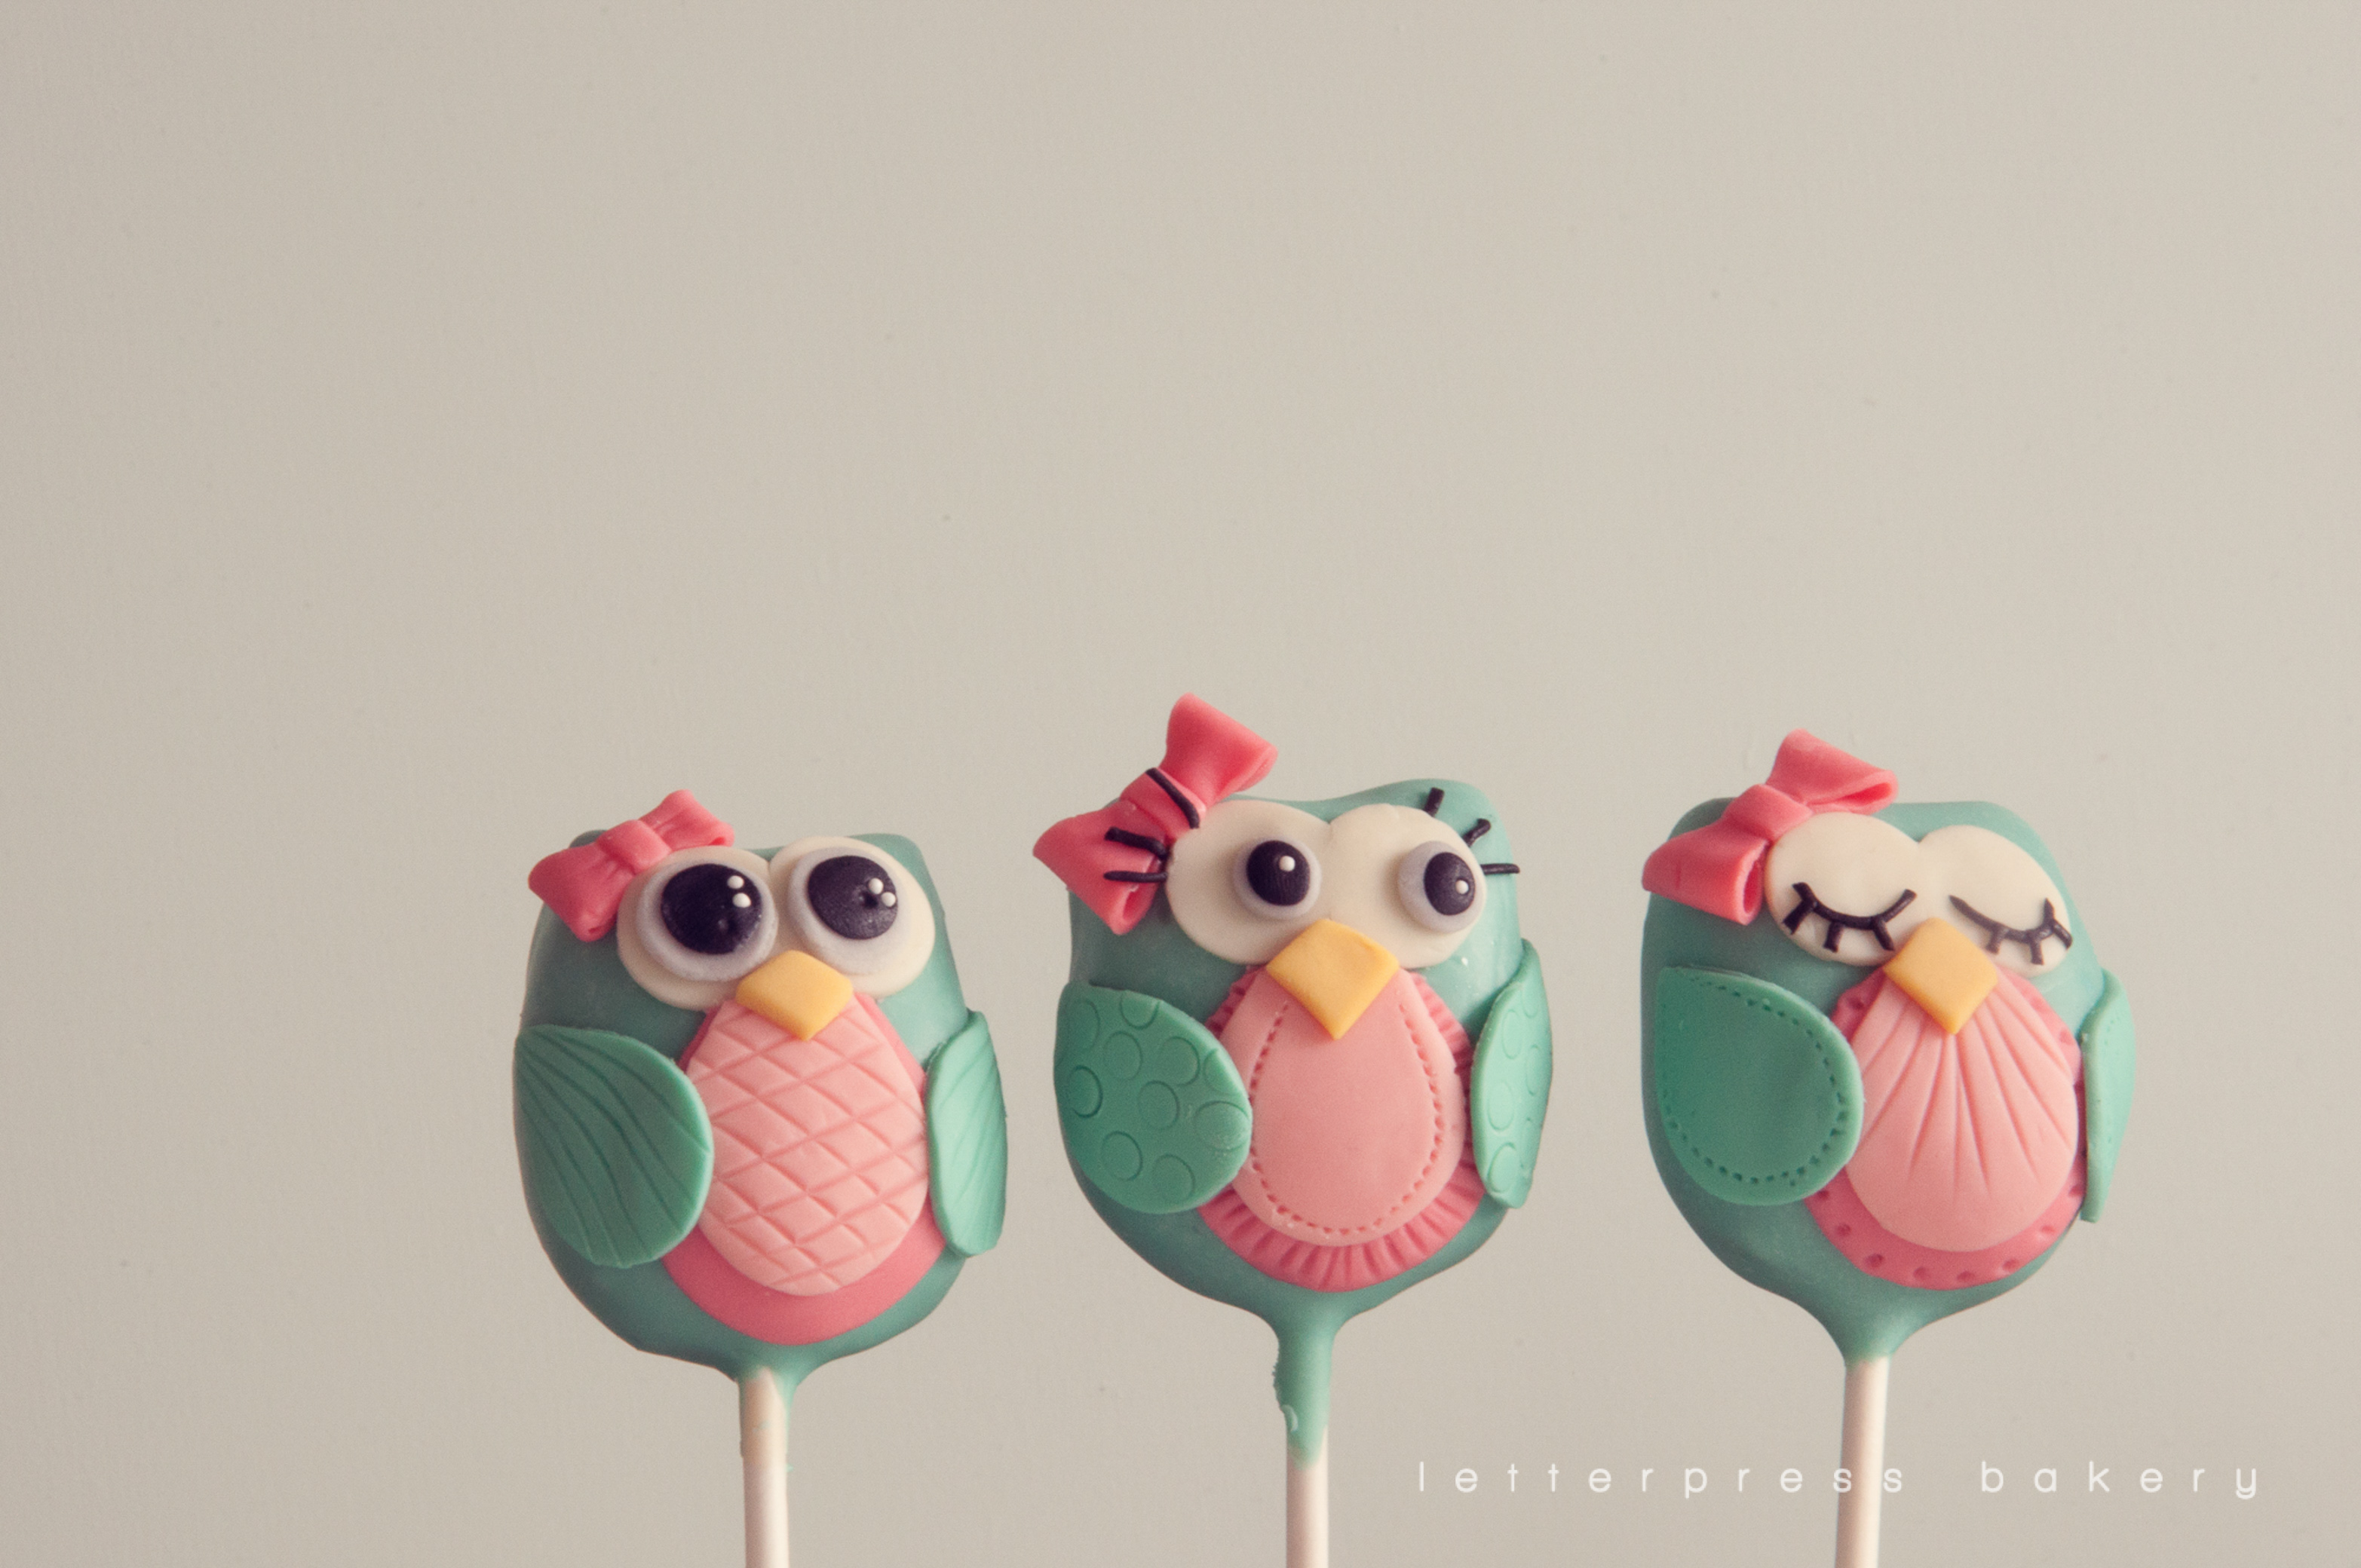 With pink bows and accents girl owl cake pops